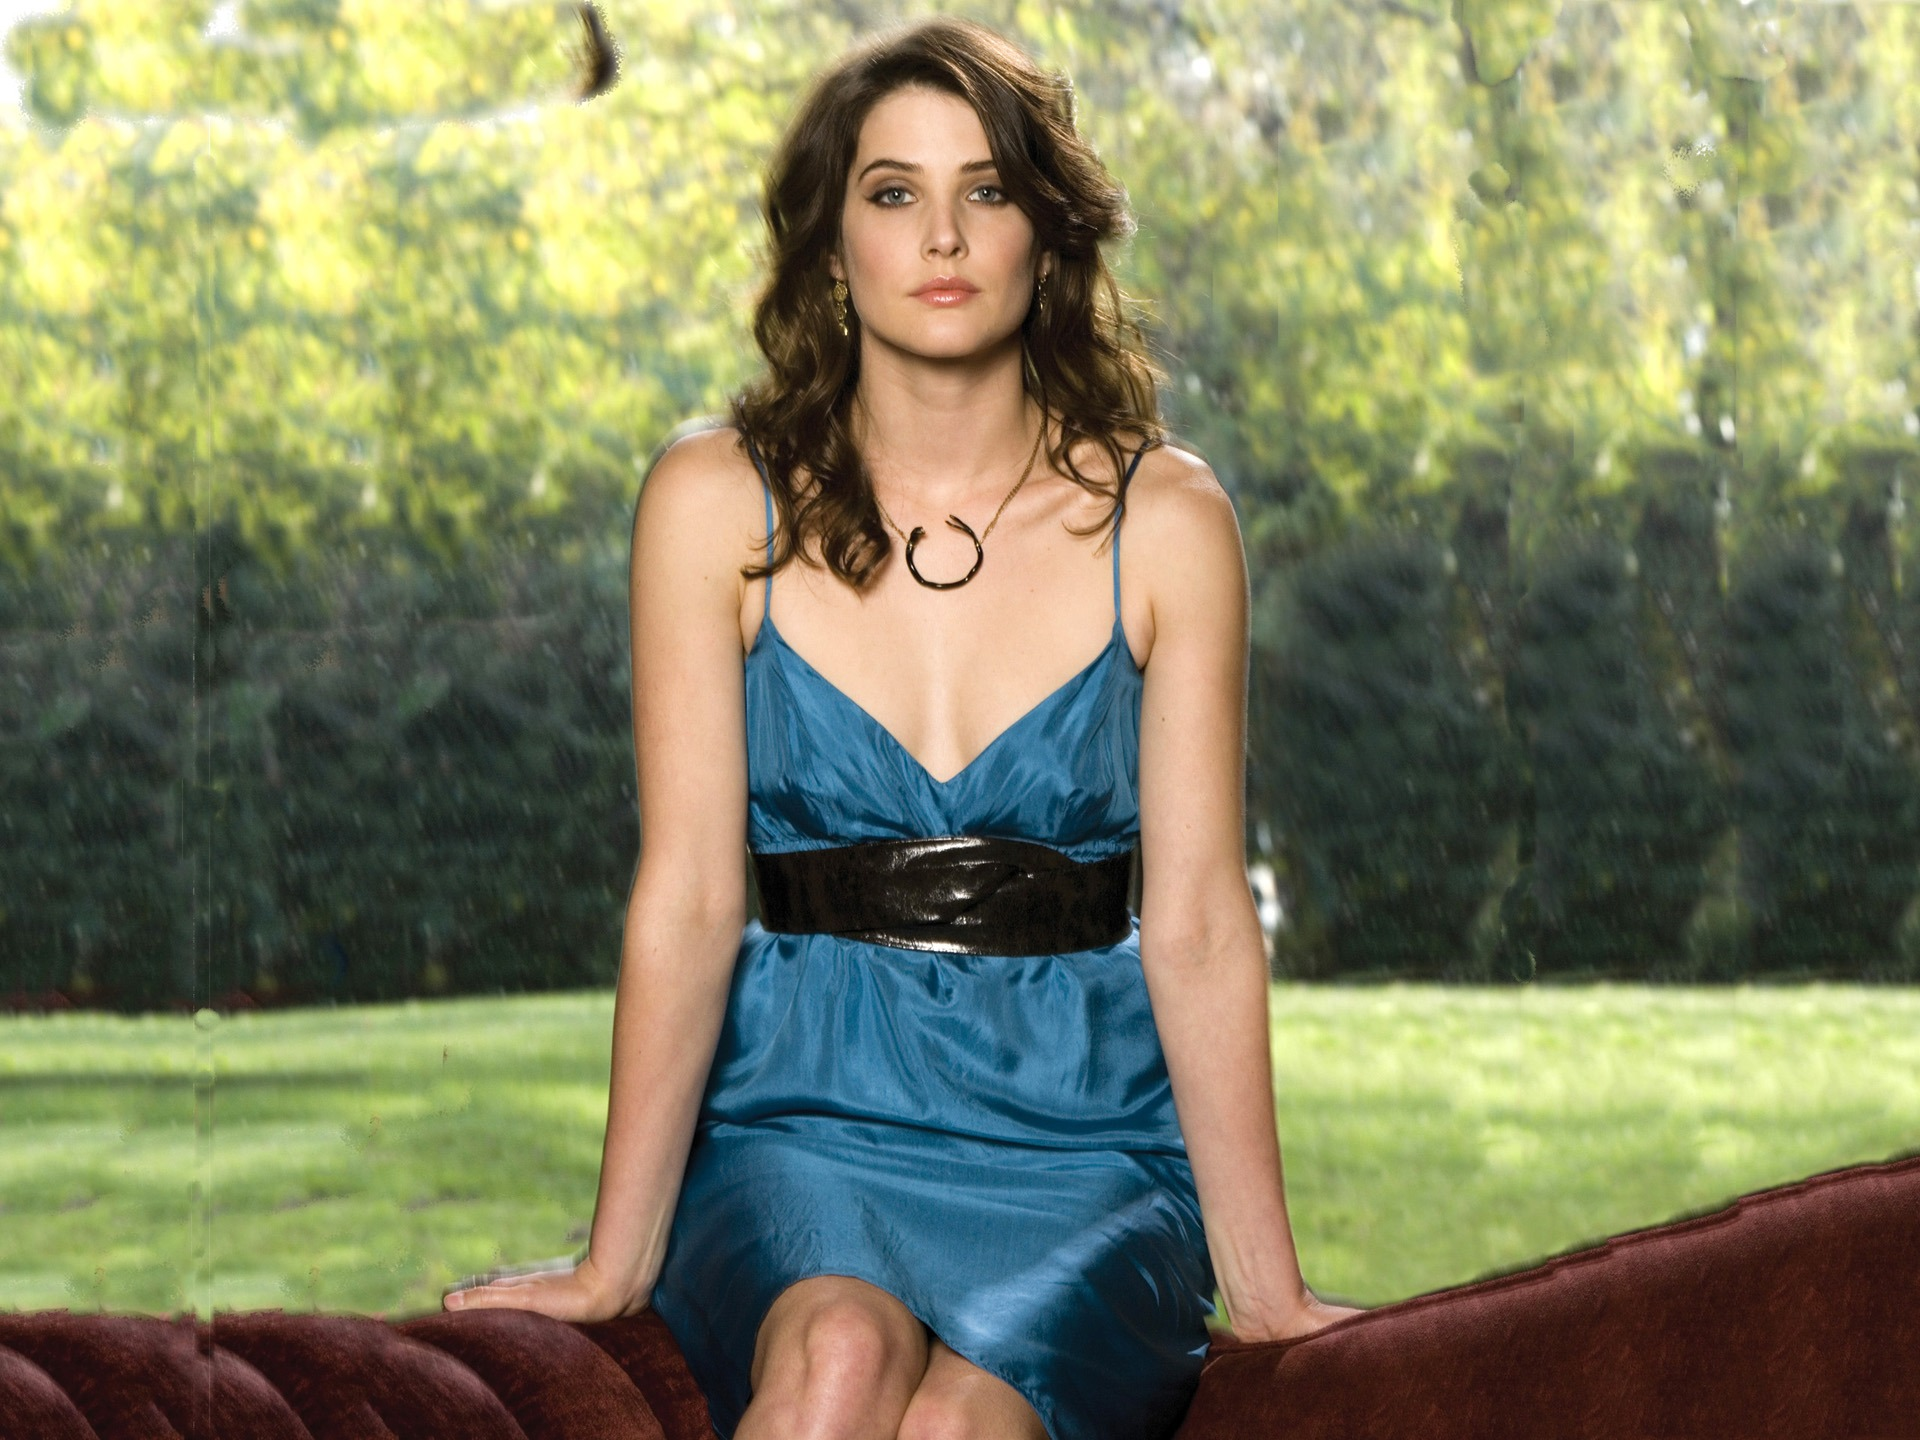 1920x1440 - Cobie Smulders Wallpapers 18